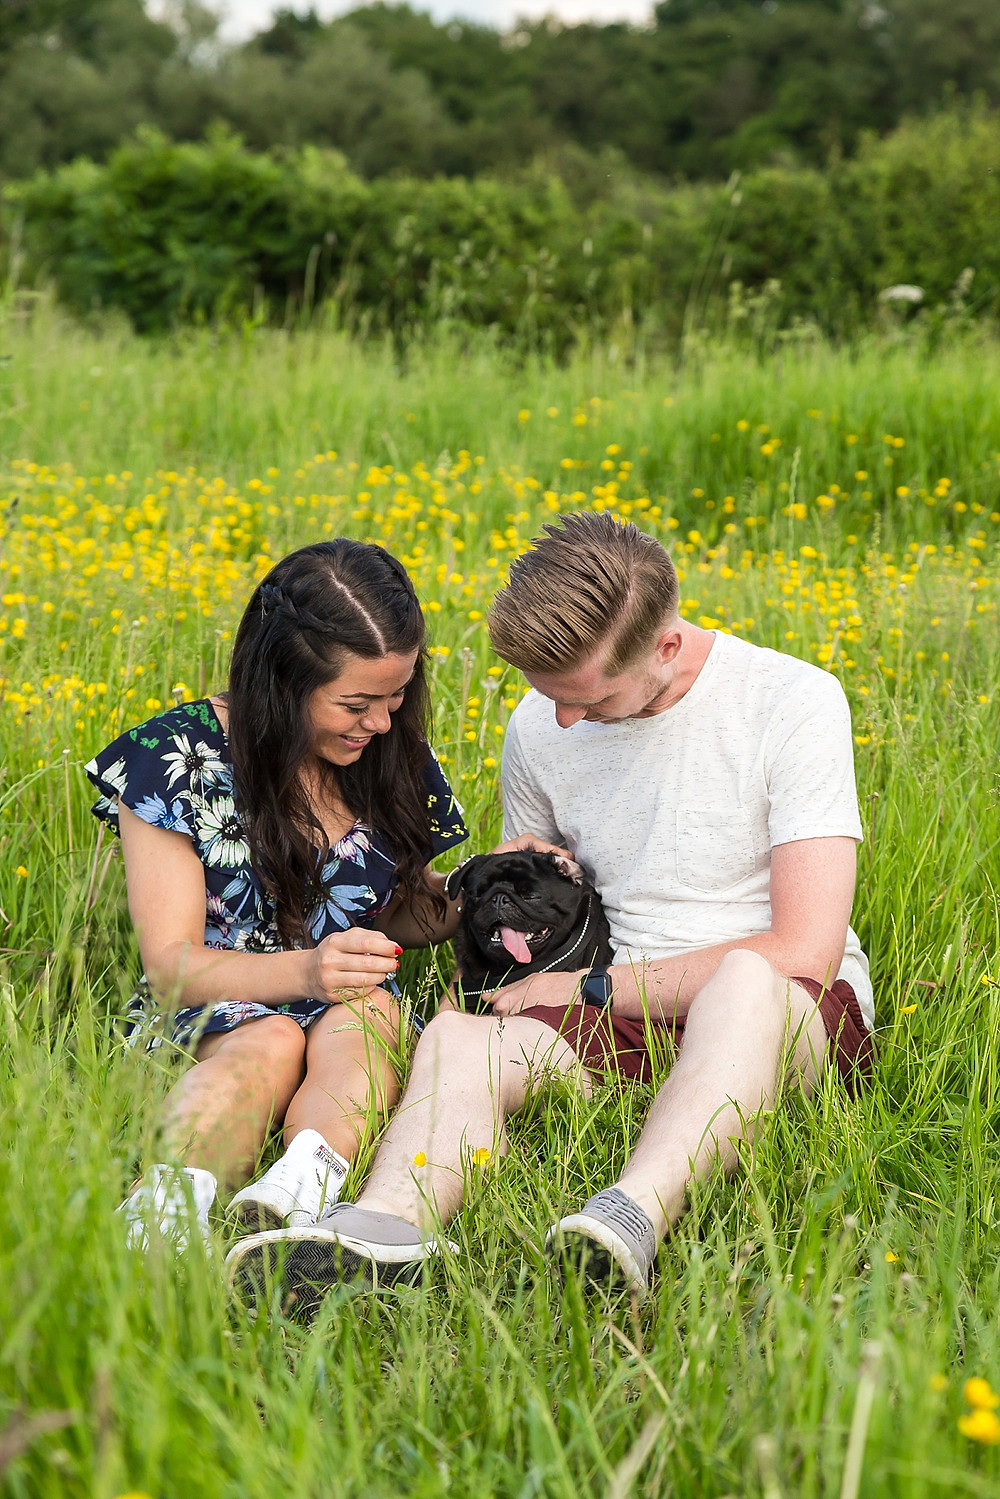 Engagement shoot in Warwickshire countryside with dog